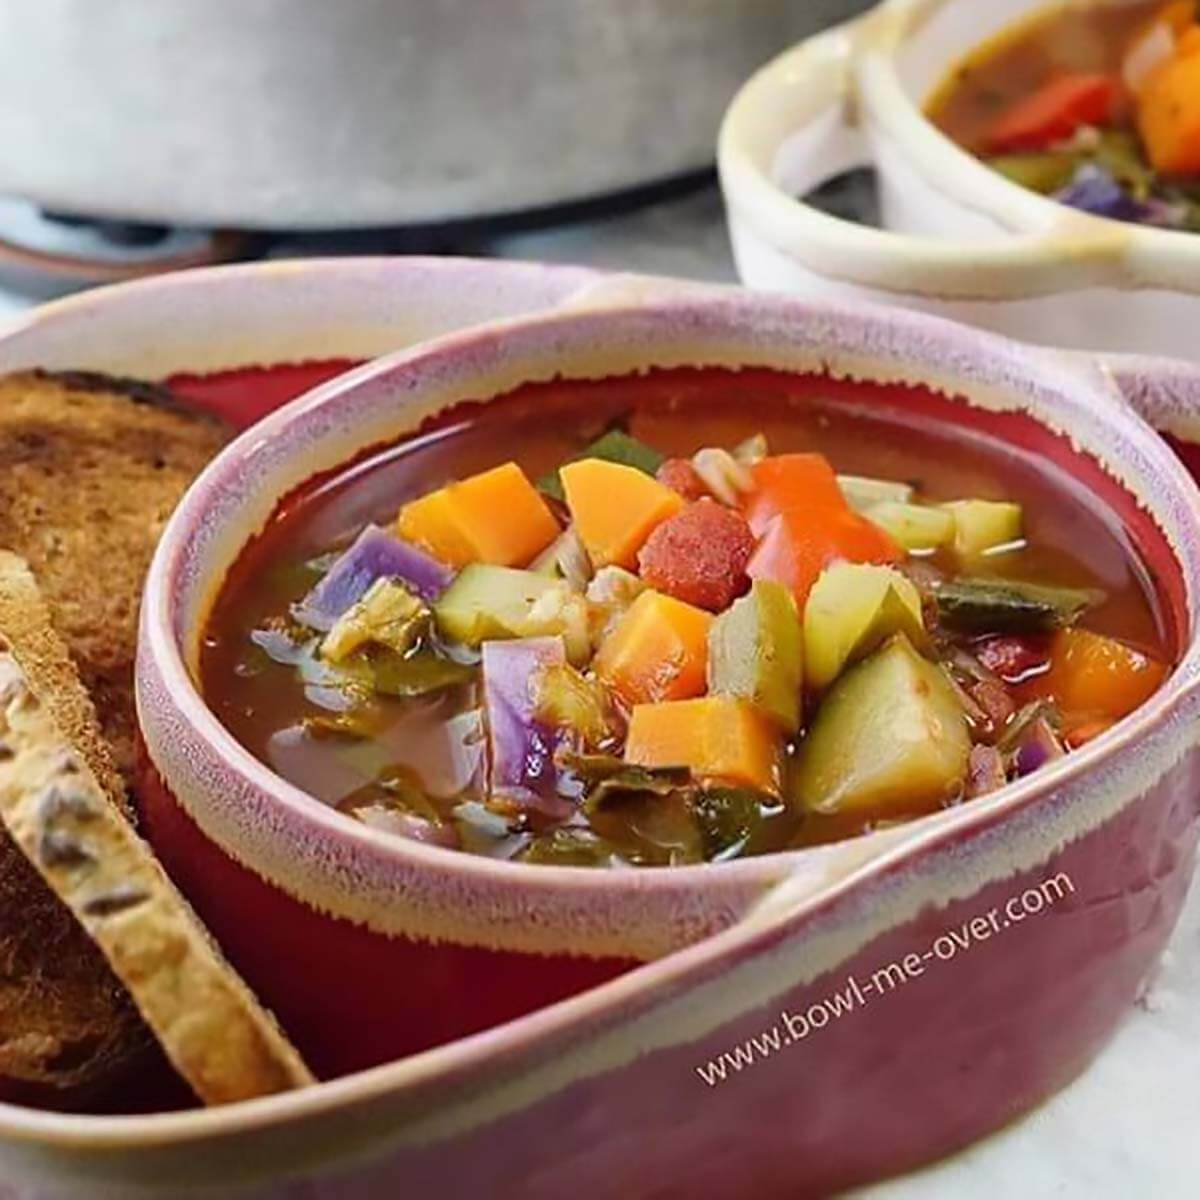 Minestrone soup in bowl served with toast points.